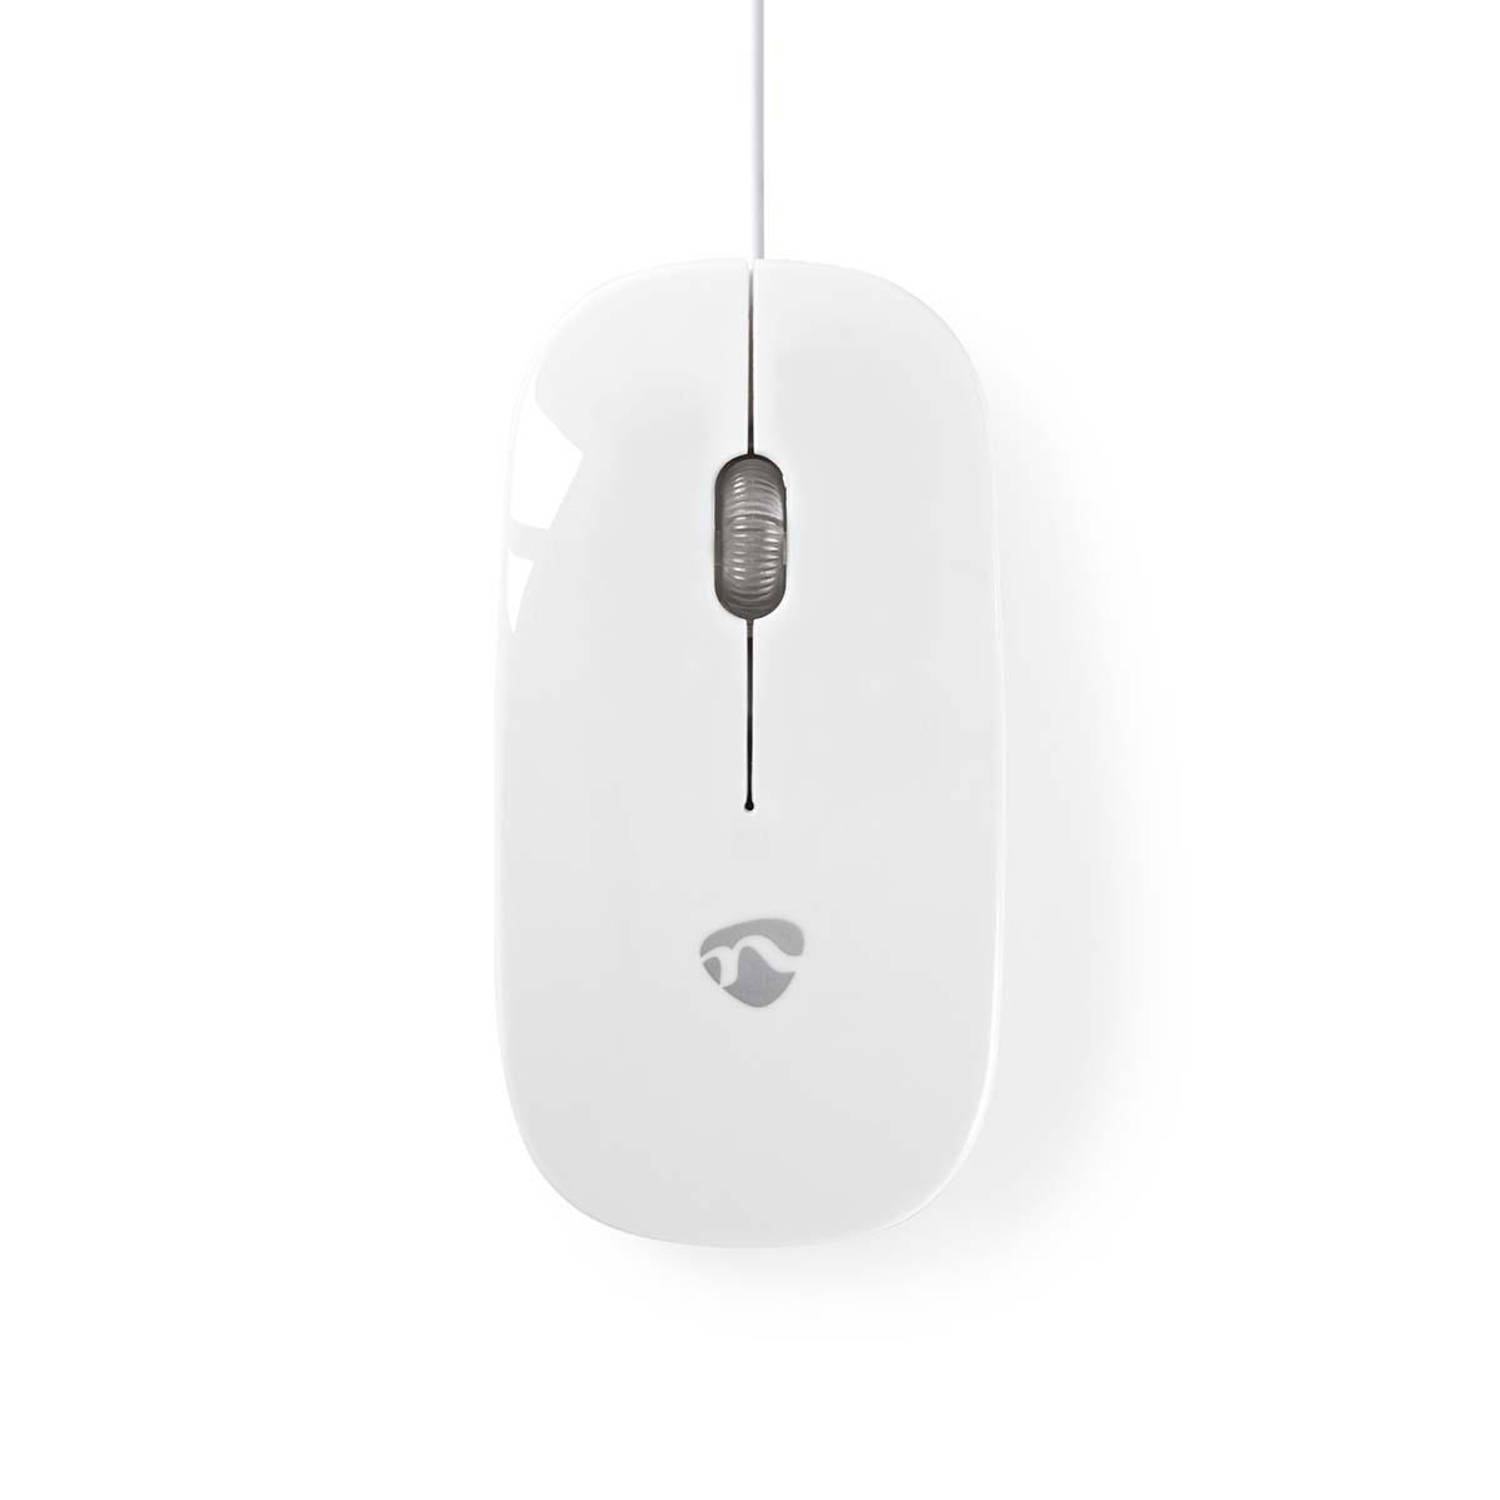 Nedis design 3 knops muis mouse wit